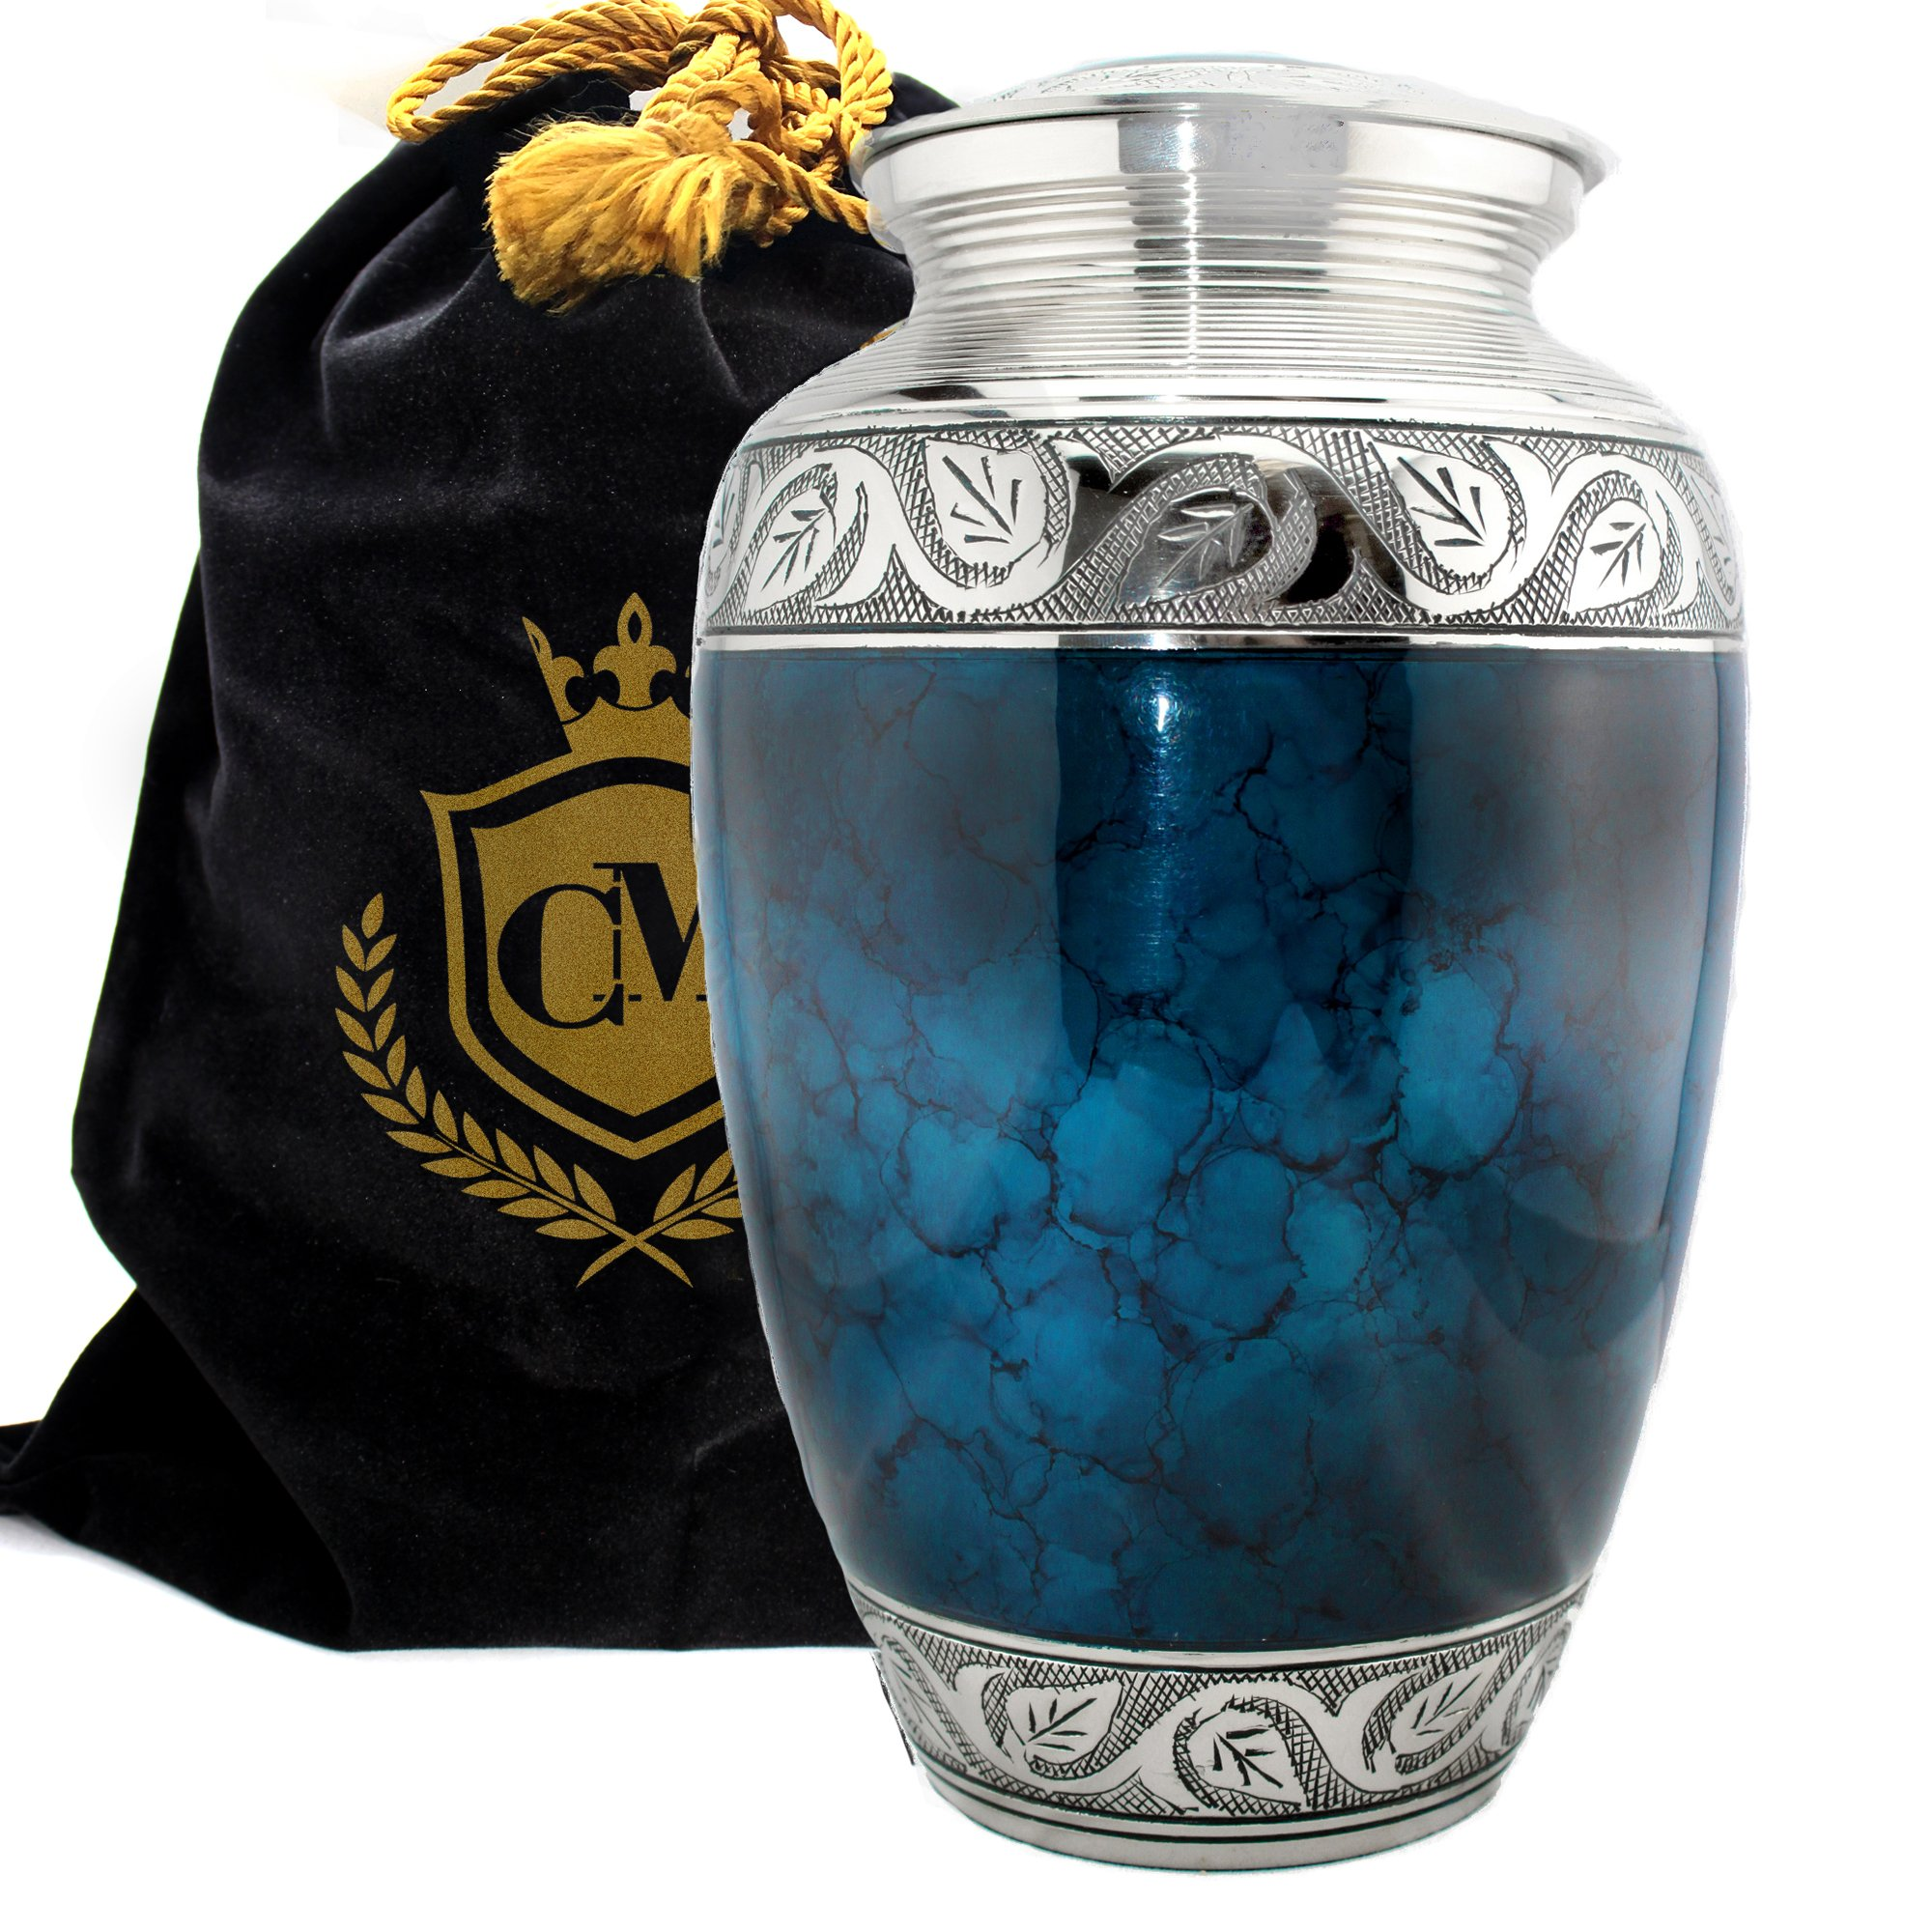 Moonstone Blue 100% Brass Burial or Funeral Adult Cremation Urn for Human Ashes - Adult, Large (Large) by Connolly Memorials (Image #1)